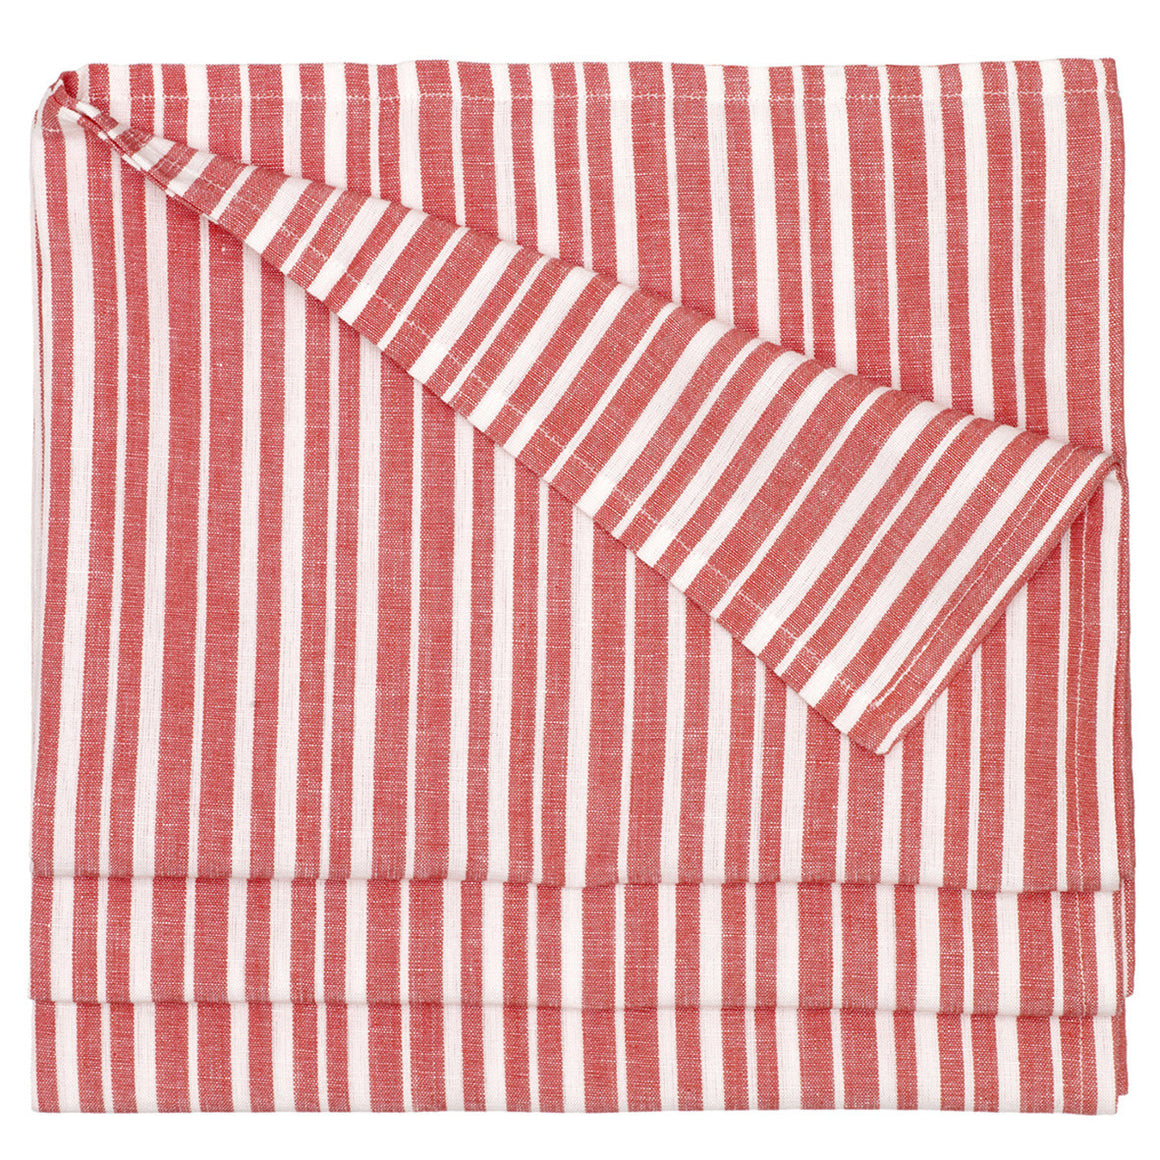 Palermo Ticking Stripe Cotton Linen Tablecloth in Geranium Red